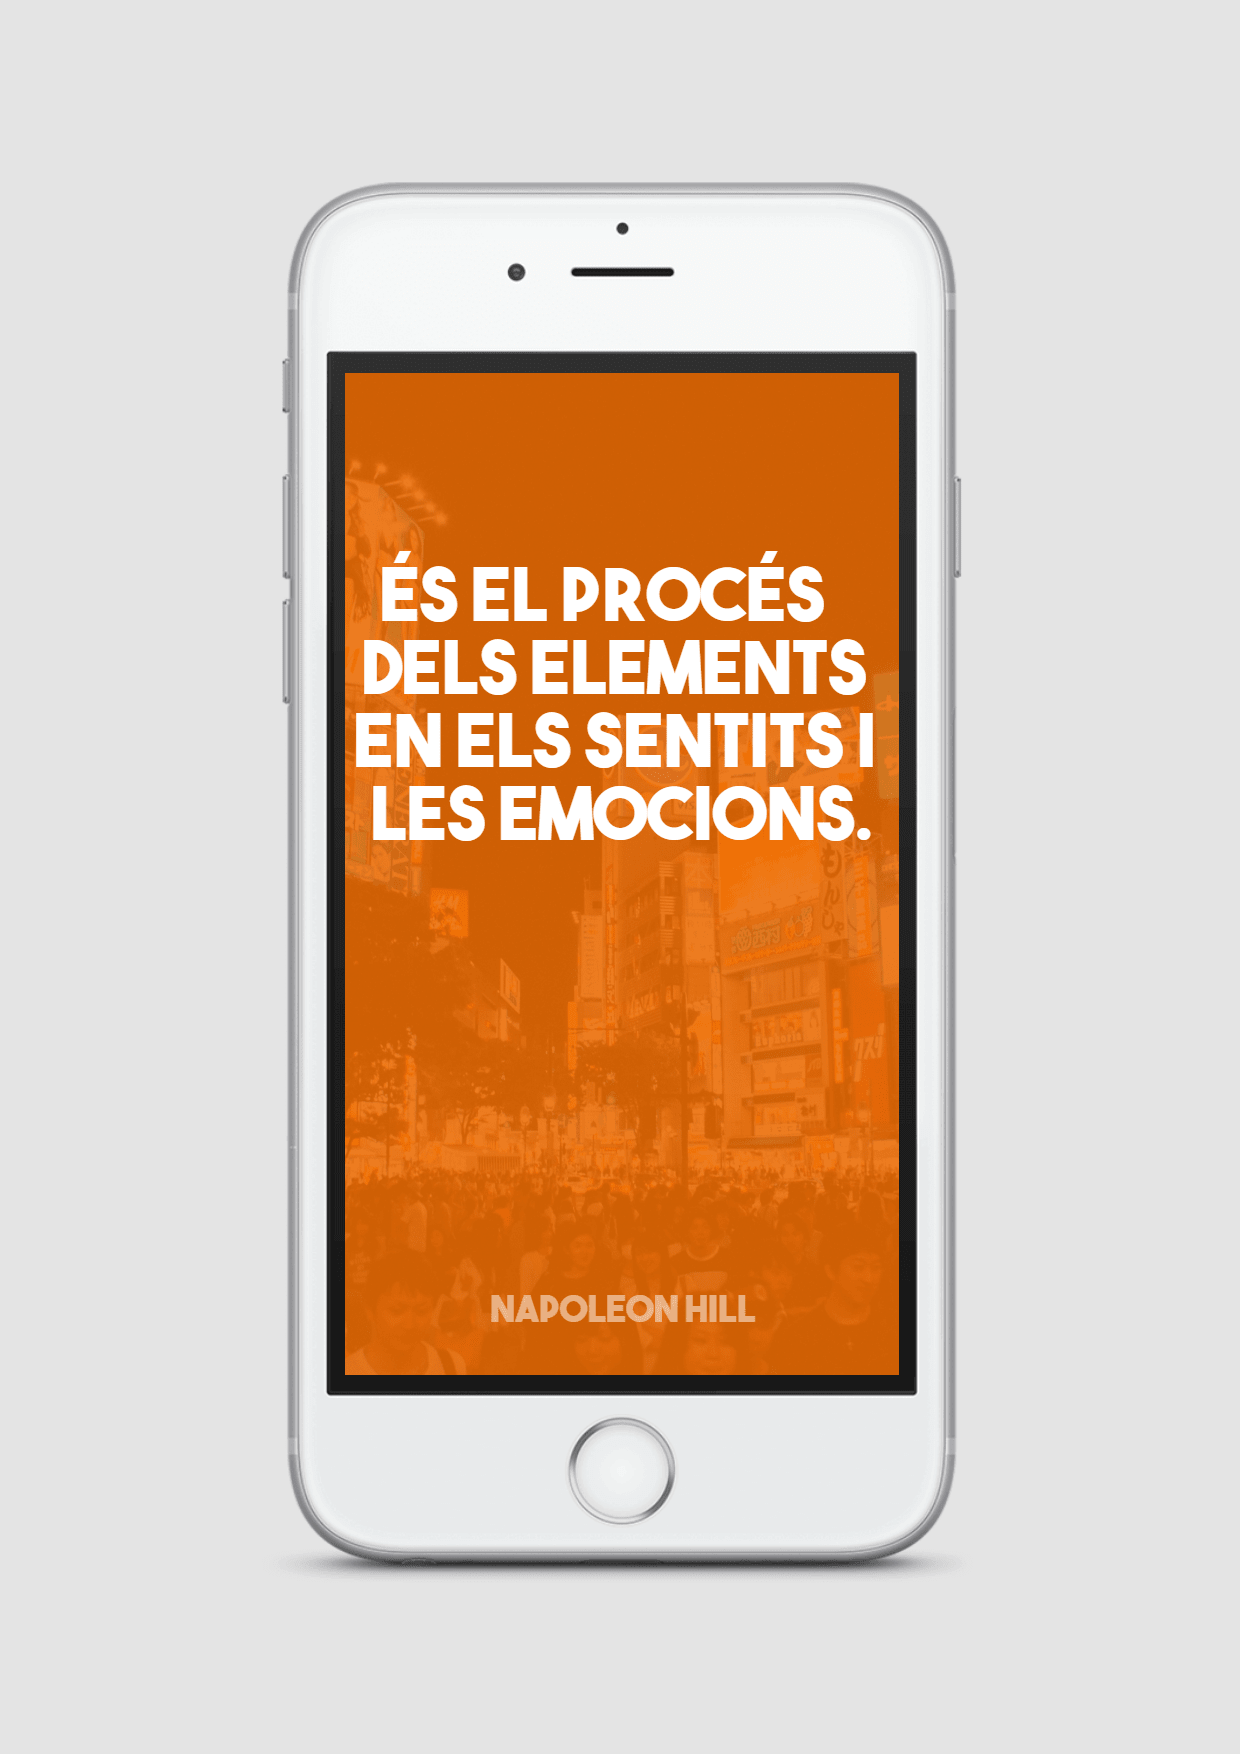 Poster,                Text,                Quote,                Mockup,                Inspiration,                Life,                Photo,                Image,                Phone,                Iphone,                White,                Red,                 Free Image